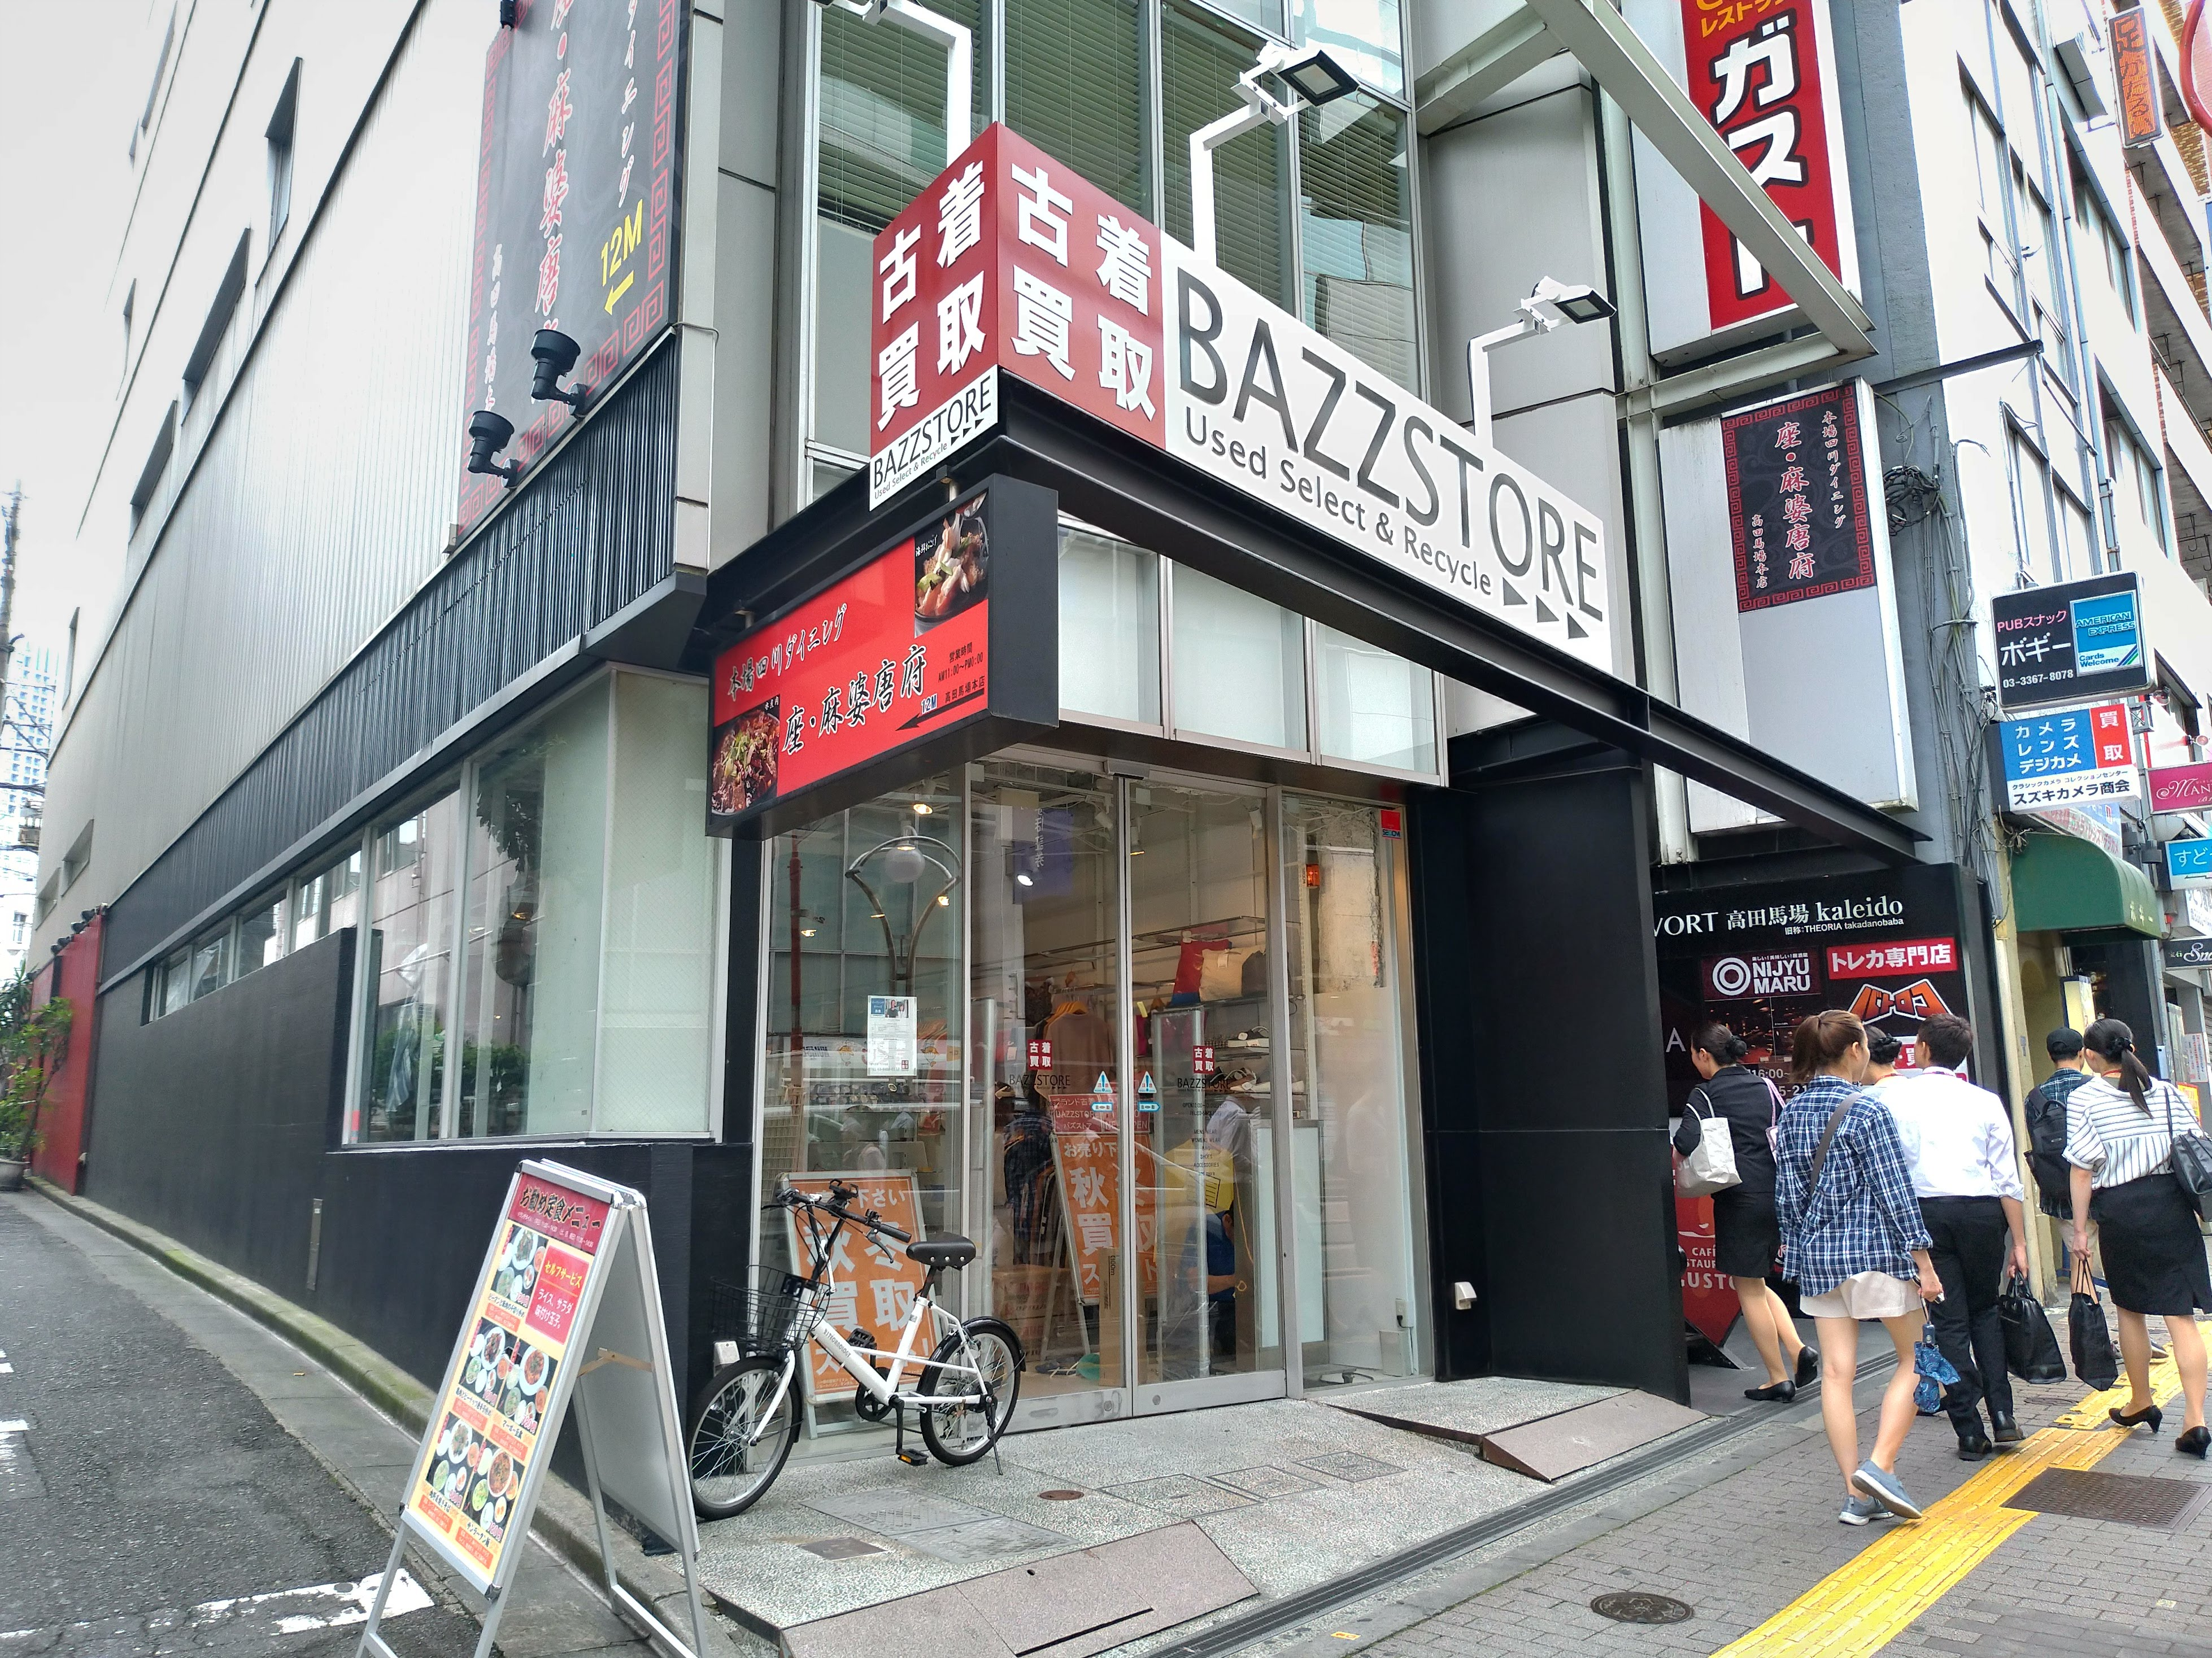 BAZZSTORE 高田馬場早稲田通り西口店(バズストア)